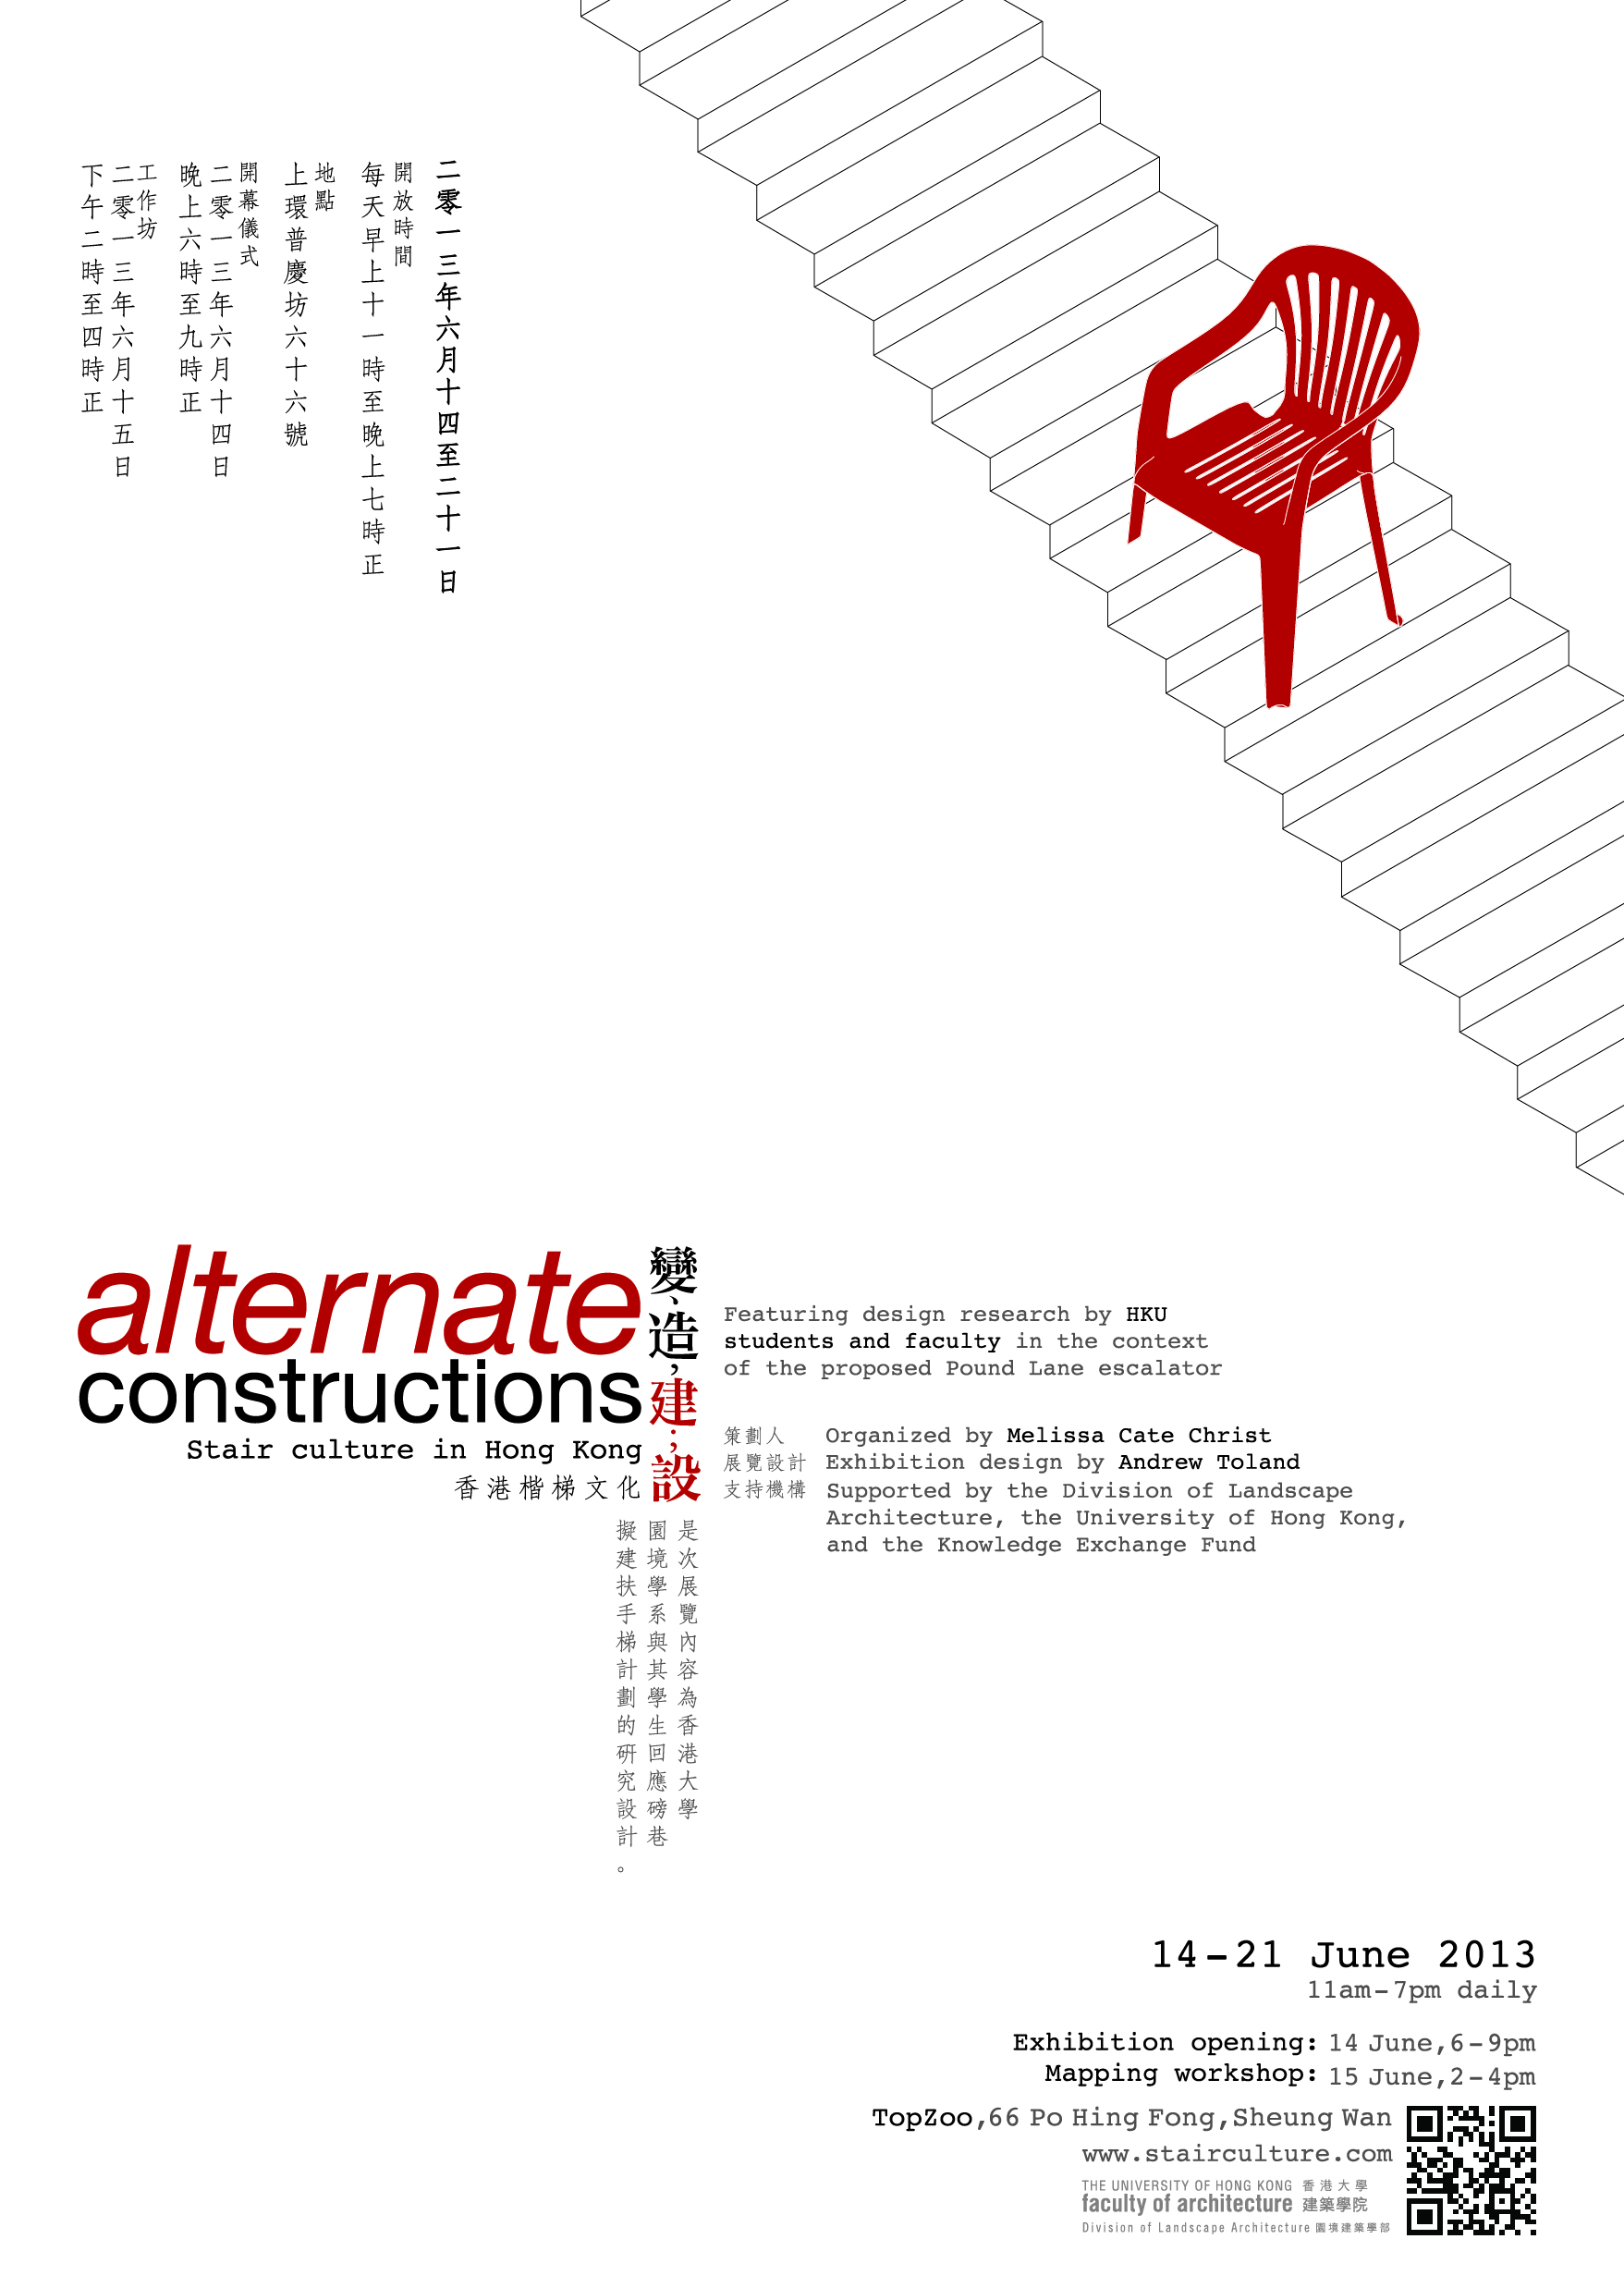 alternate constructions: Stair culture in Hong Kong